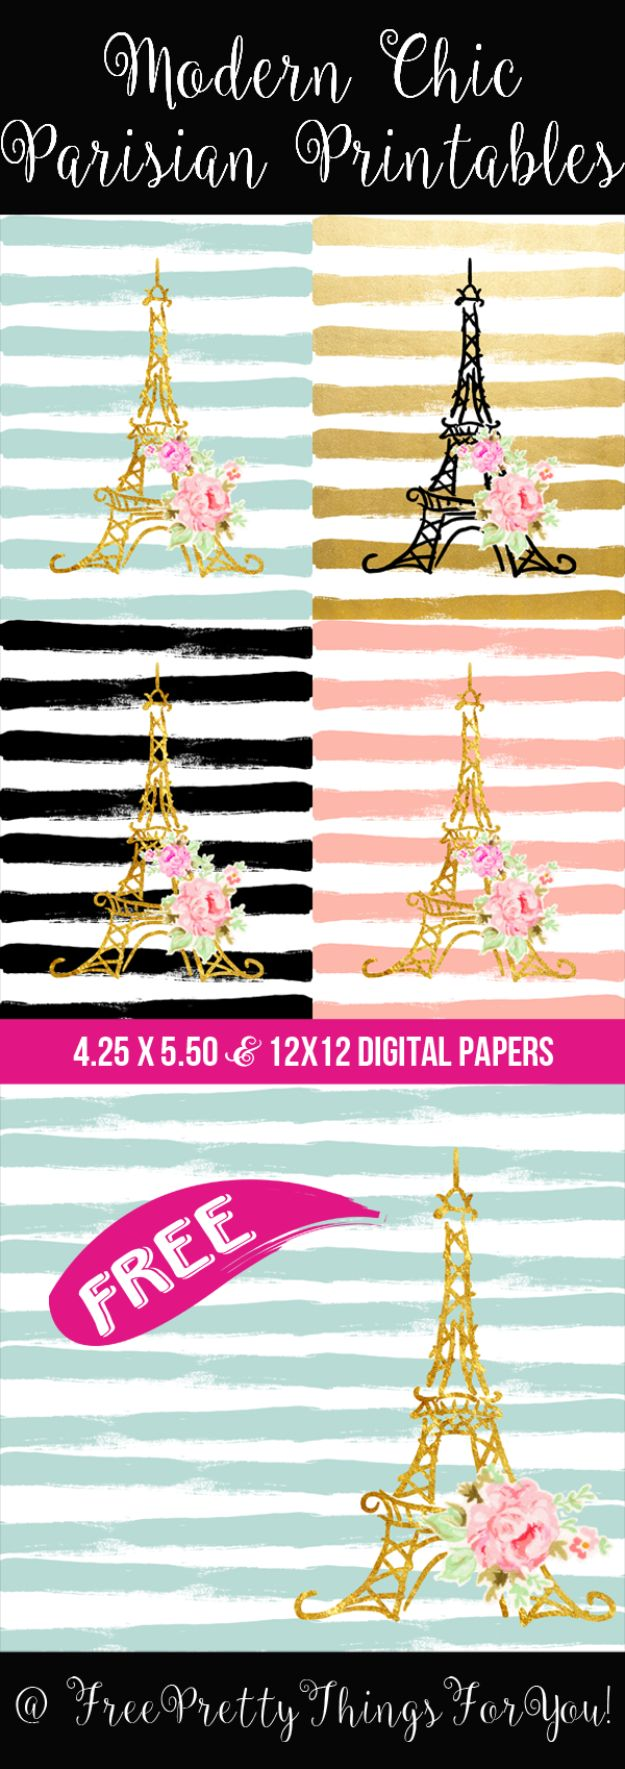 Free Printables For Your Walls - Modern Chic Parisian Printables - Easy Canvas Ideas With Free Downloadable Artwork and Quote Sayings - Best Free Prints for Wall Art and Picture to Print for Home and Bedroom Decor - Signs for the Home, Organization, Office - Quotes for Bedroom and Kitchens, Vintage Bathroom Pictures - Downloadable Printable for Kids - DIY and Crafts by DIY JOY #wallart #freeprintables #diyideas #diyart #walldecor #diyhomedecor http://diyjoy.com/best-free-printables-wall-art